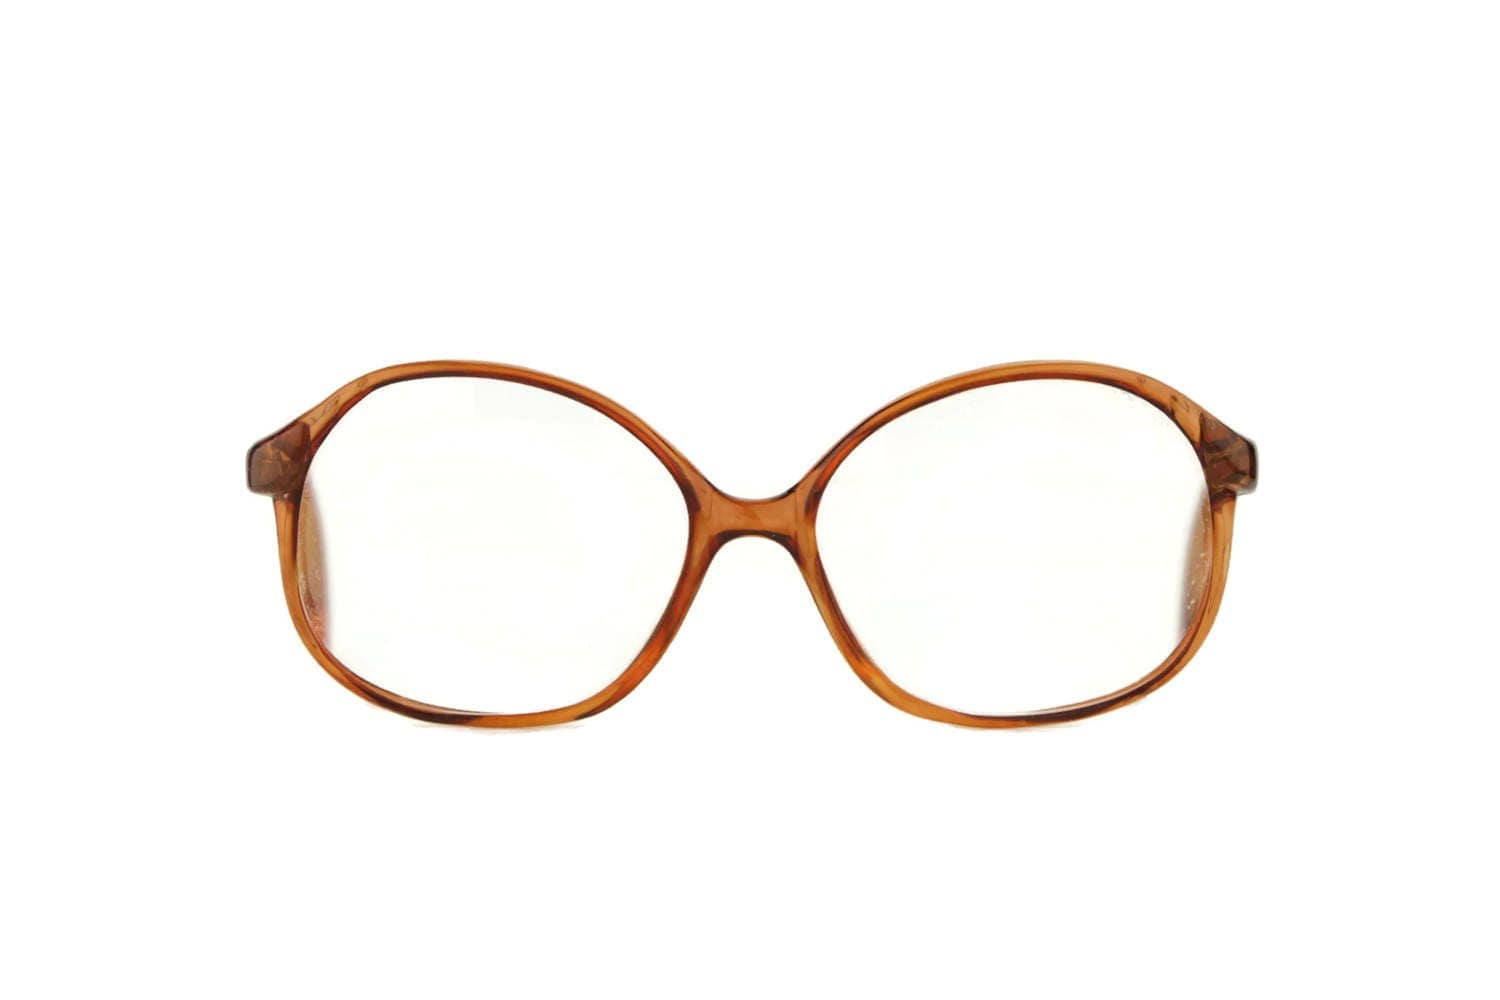 8f1c85bded GORMANNS  vintage glasses frame brown style Hippie Cat Eye rimmed square